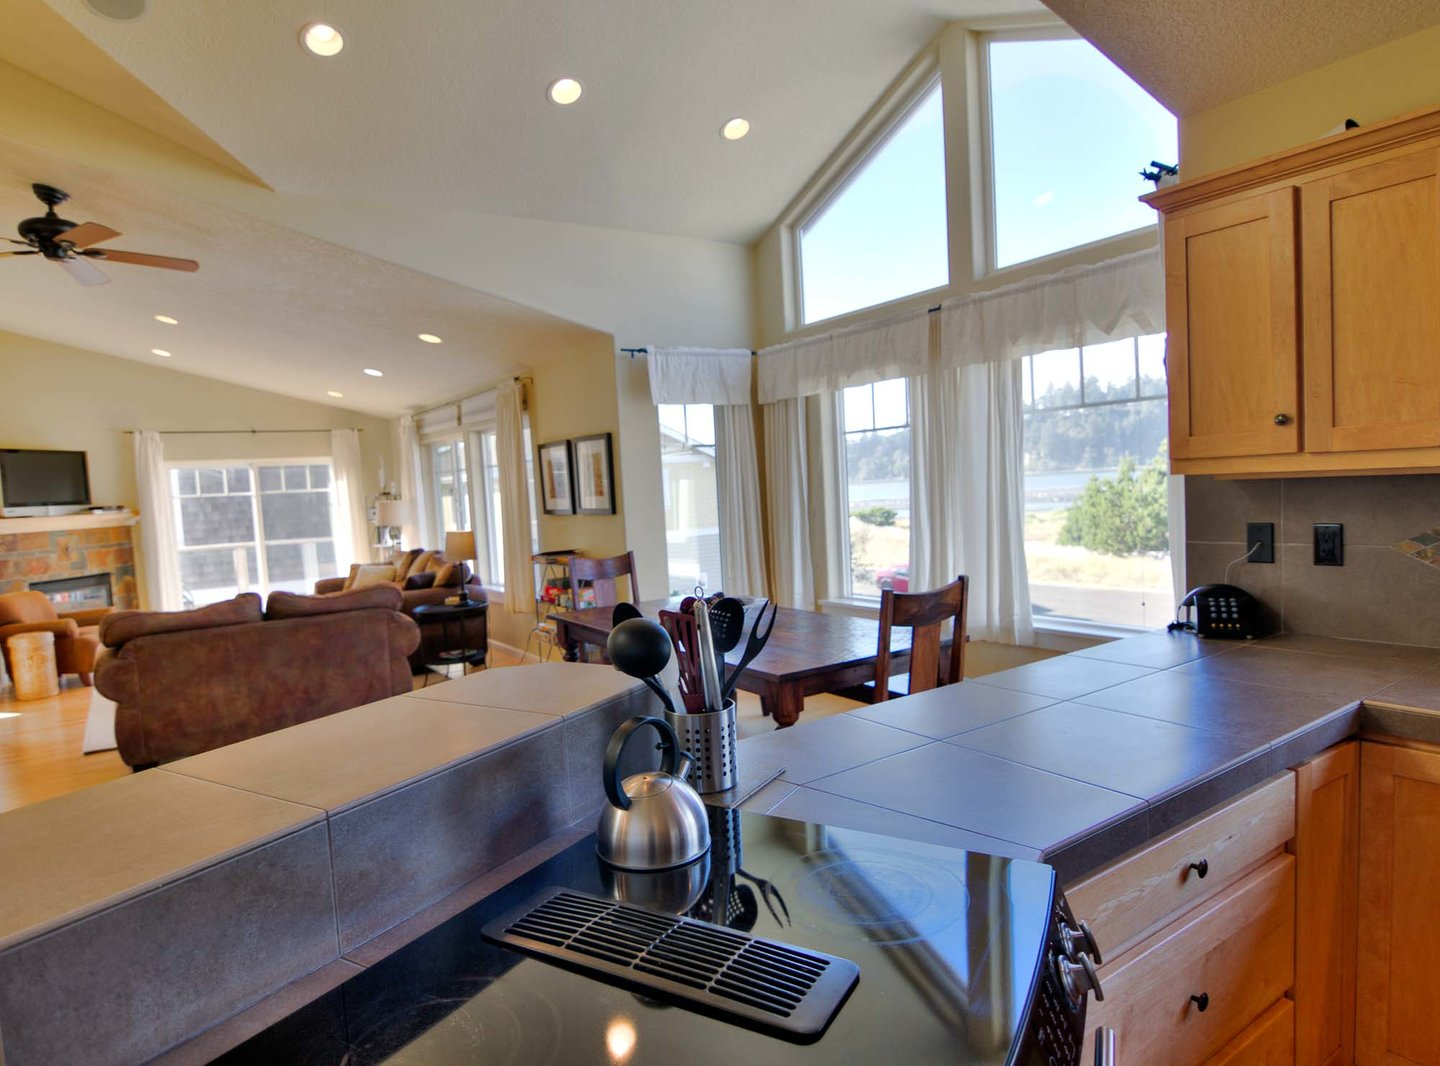 The contemporary kitchen is bathed in light, and enjoys a pleasant view as well.